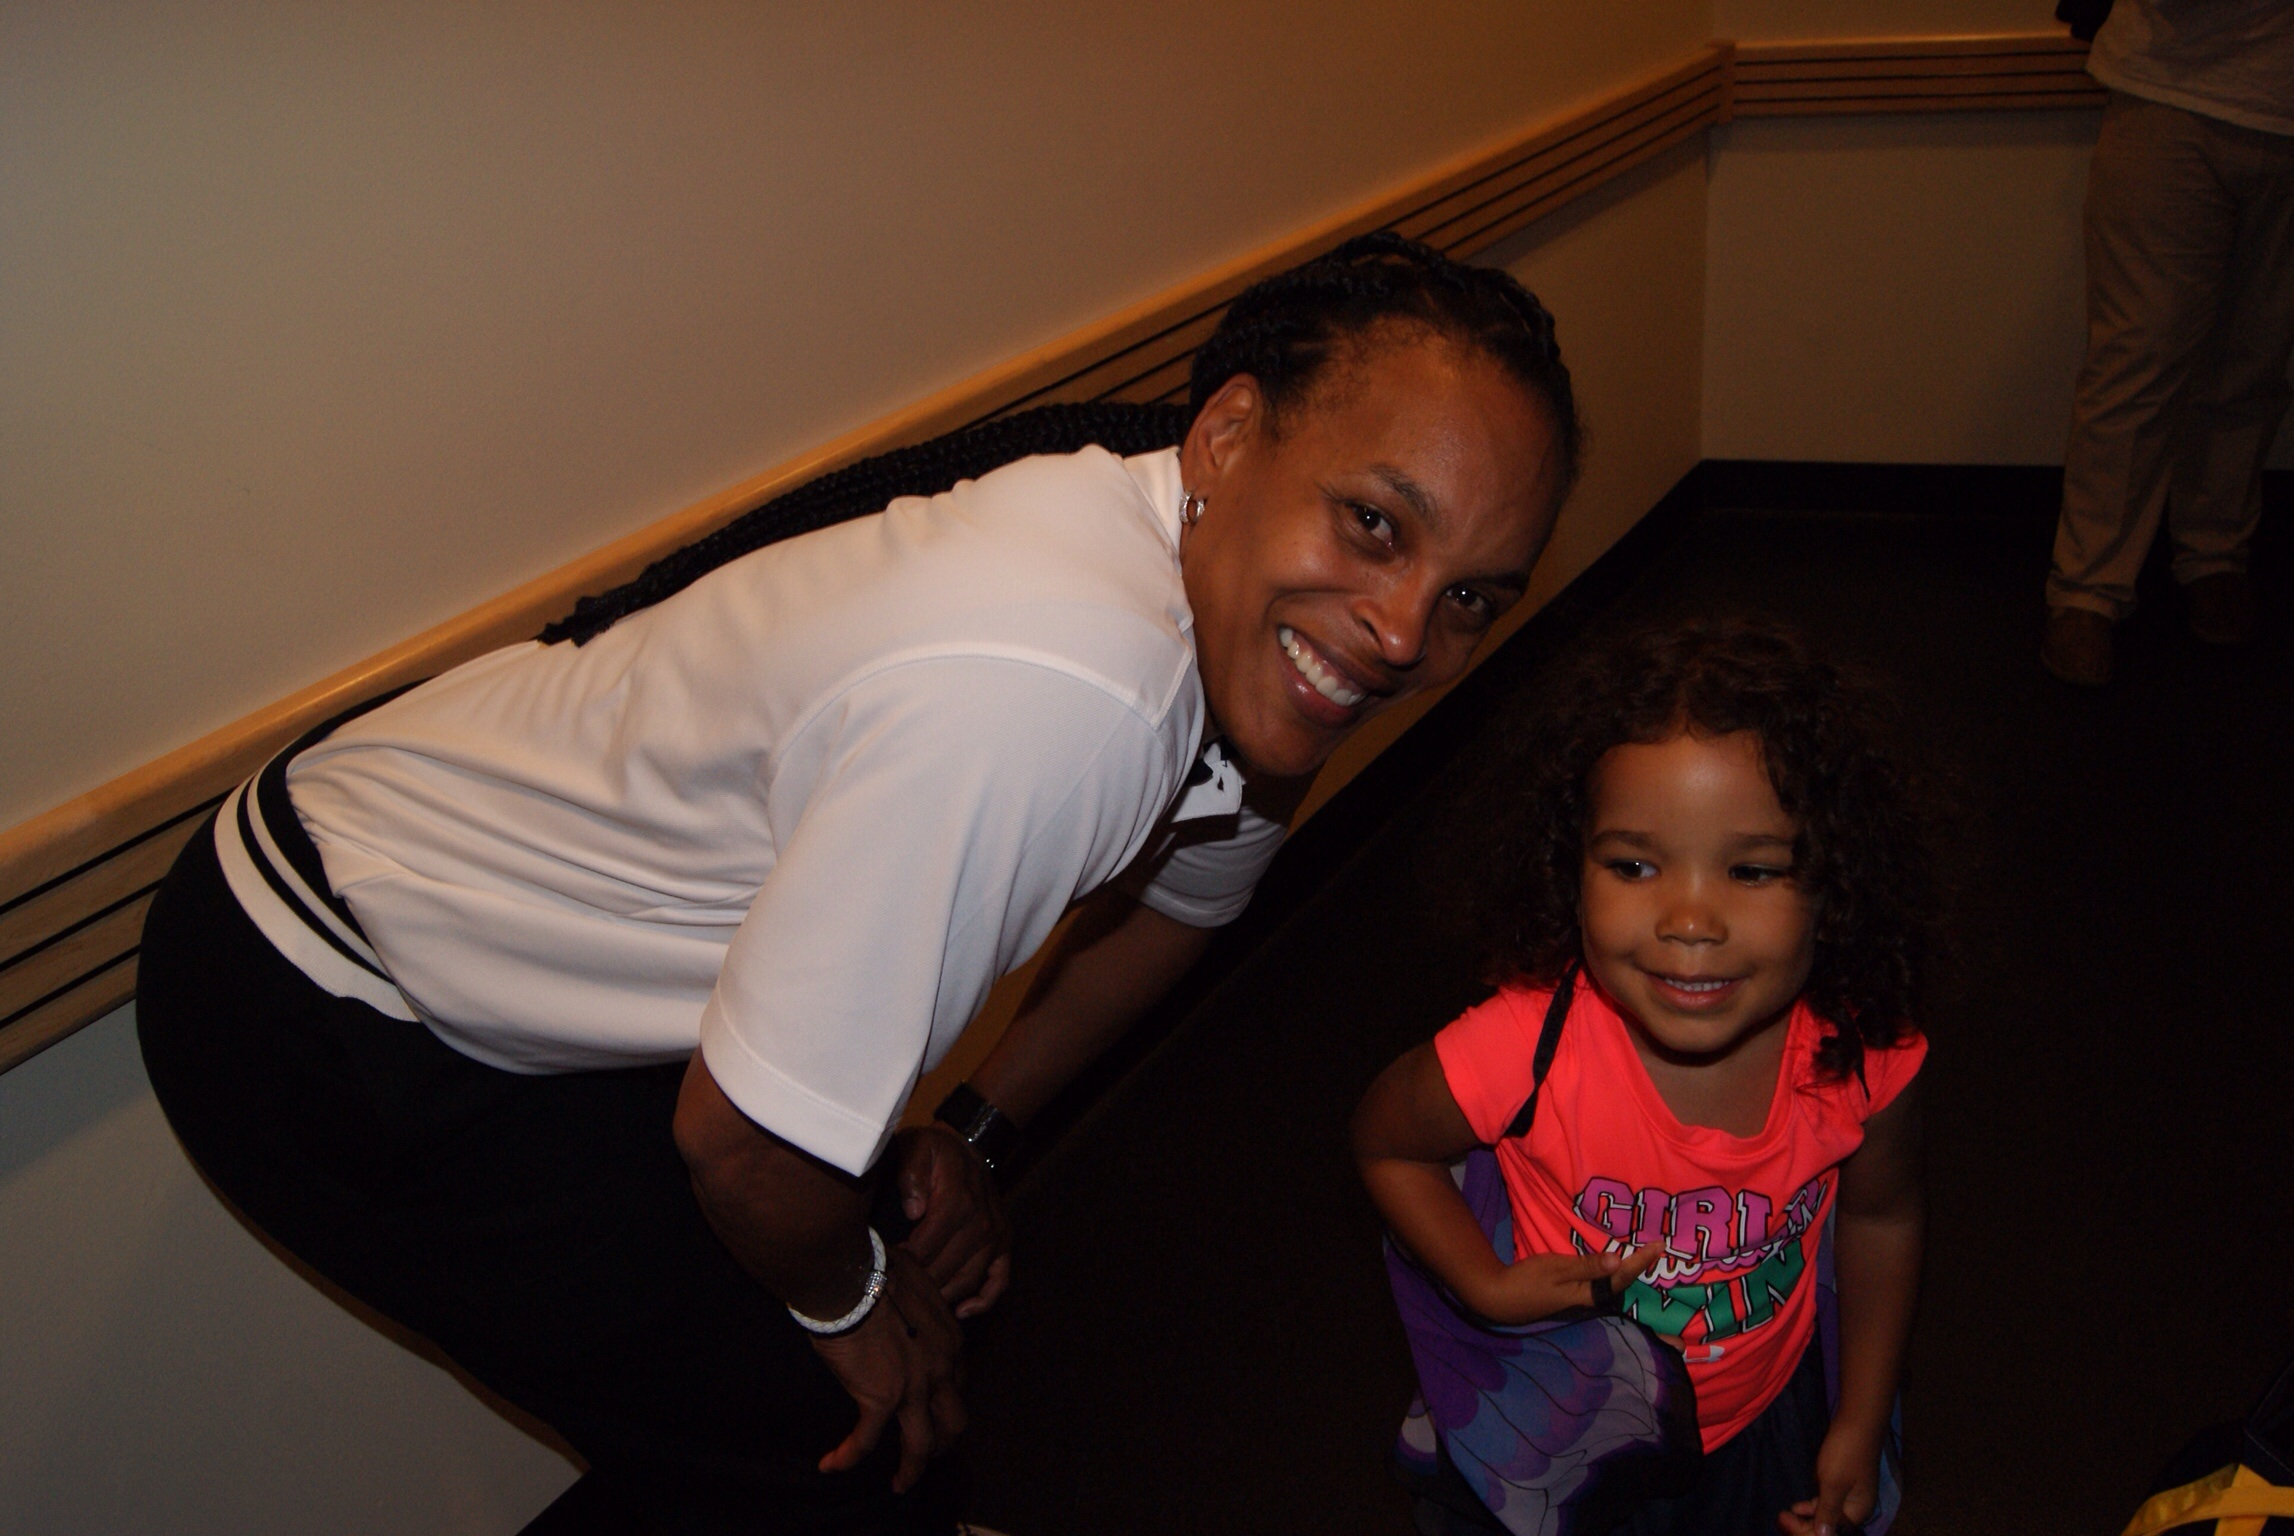 One day, I hope Camilla will appreciate that she took a picture with basketball icon, Teresa Weatherspoon.